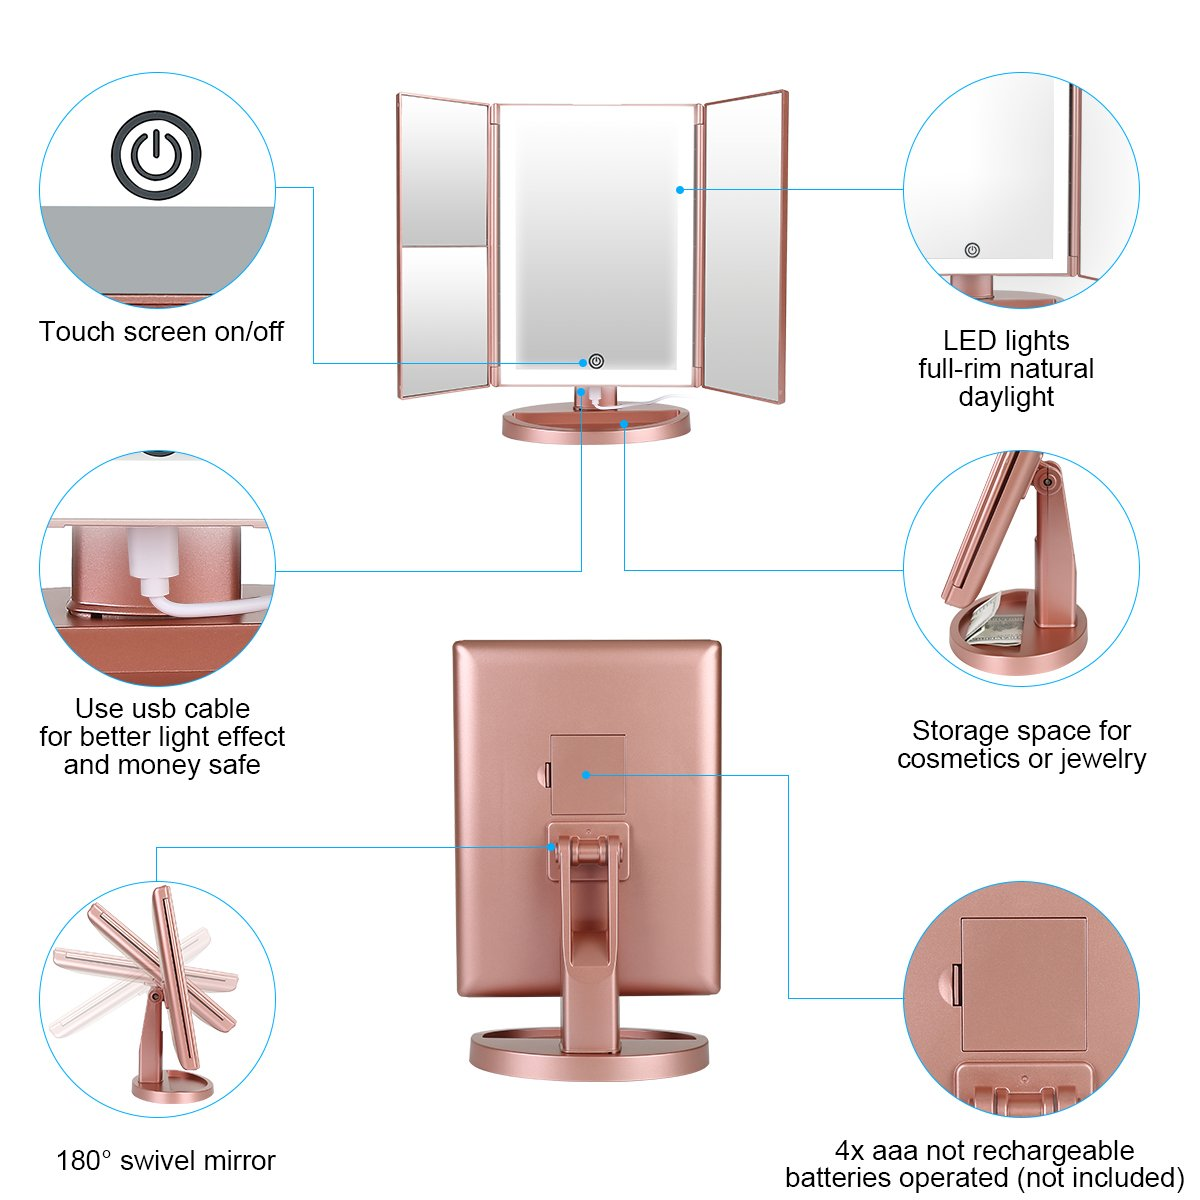 Newest 36 LED Daylight Tri-Fold Lighted Vanity Makeup Mirror Rose Gold (Like New)